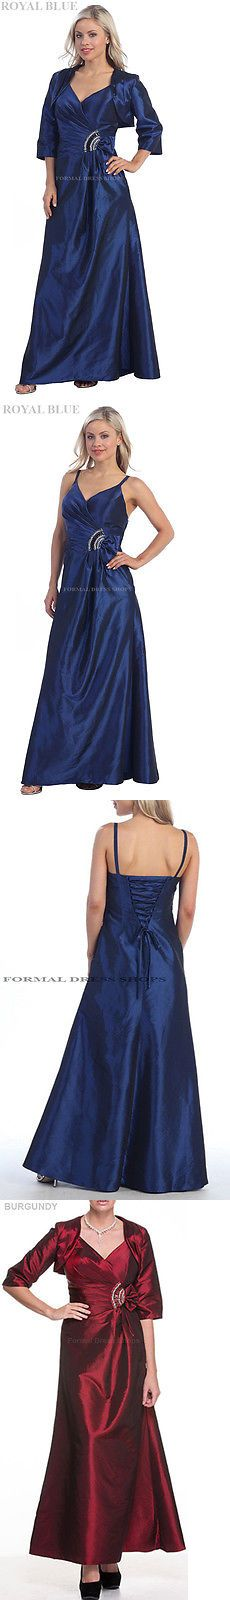 Mother of the Bride 131474: Sale Modern Formal Evening Plus Size Gowns Designer Mother Of The Groom Dresses -> BUY IT NOW ONLY: $69.99 on eBay!